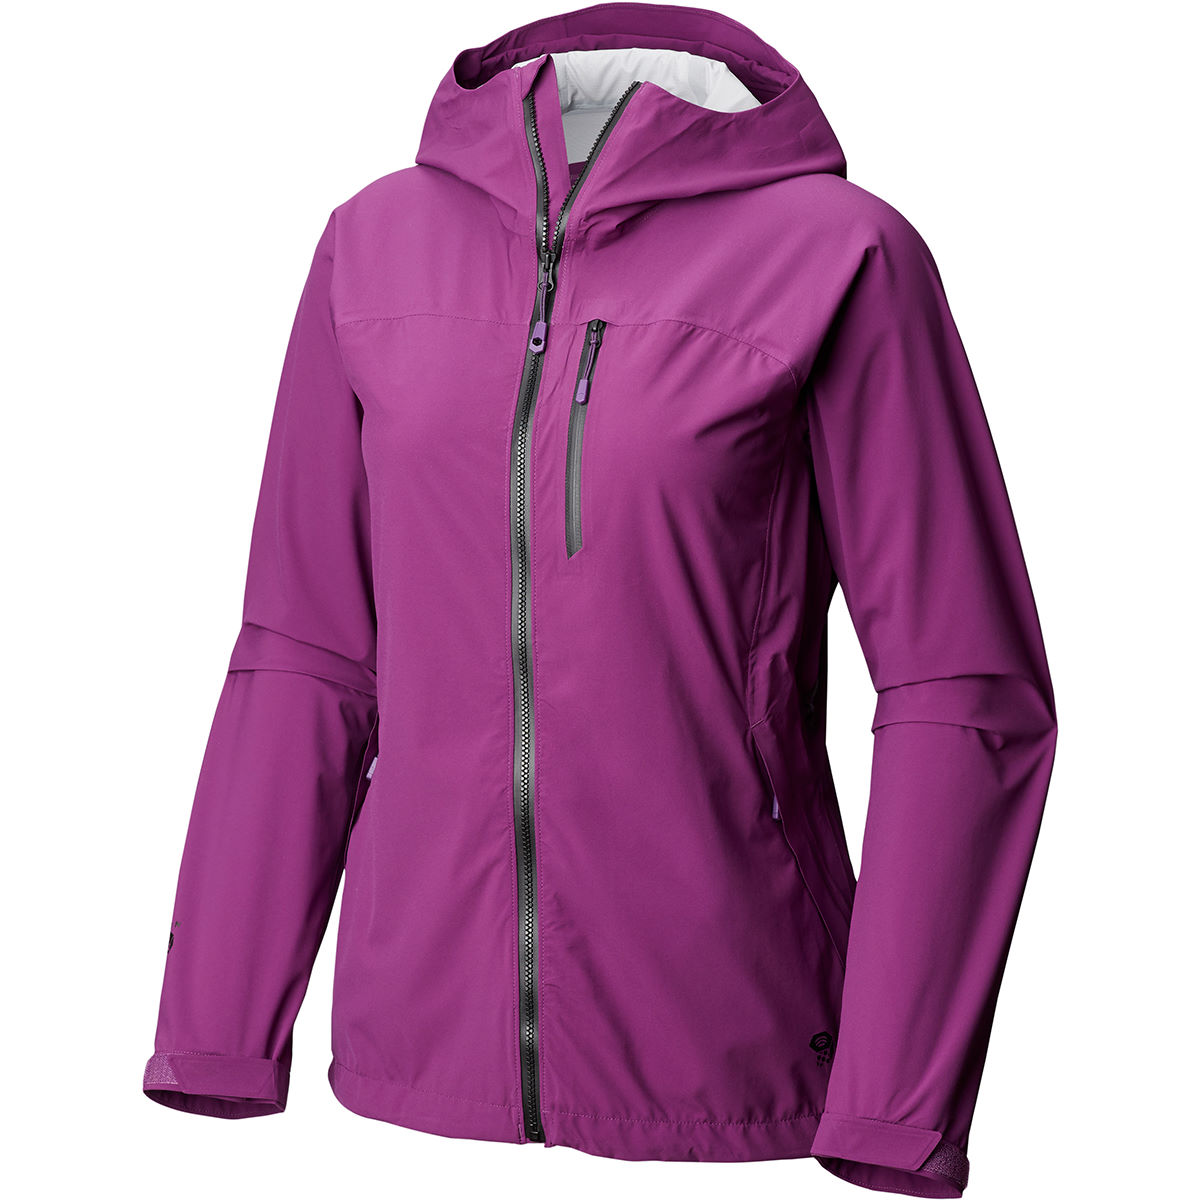 Mountain Hardwear Women's Stretch Ozonic™ Jacket – Large | Jackets